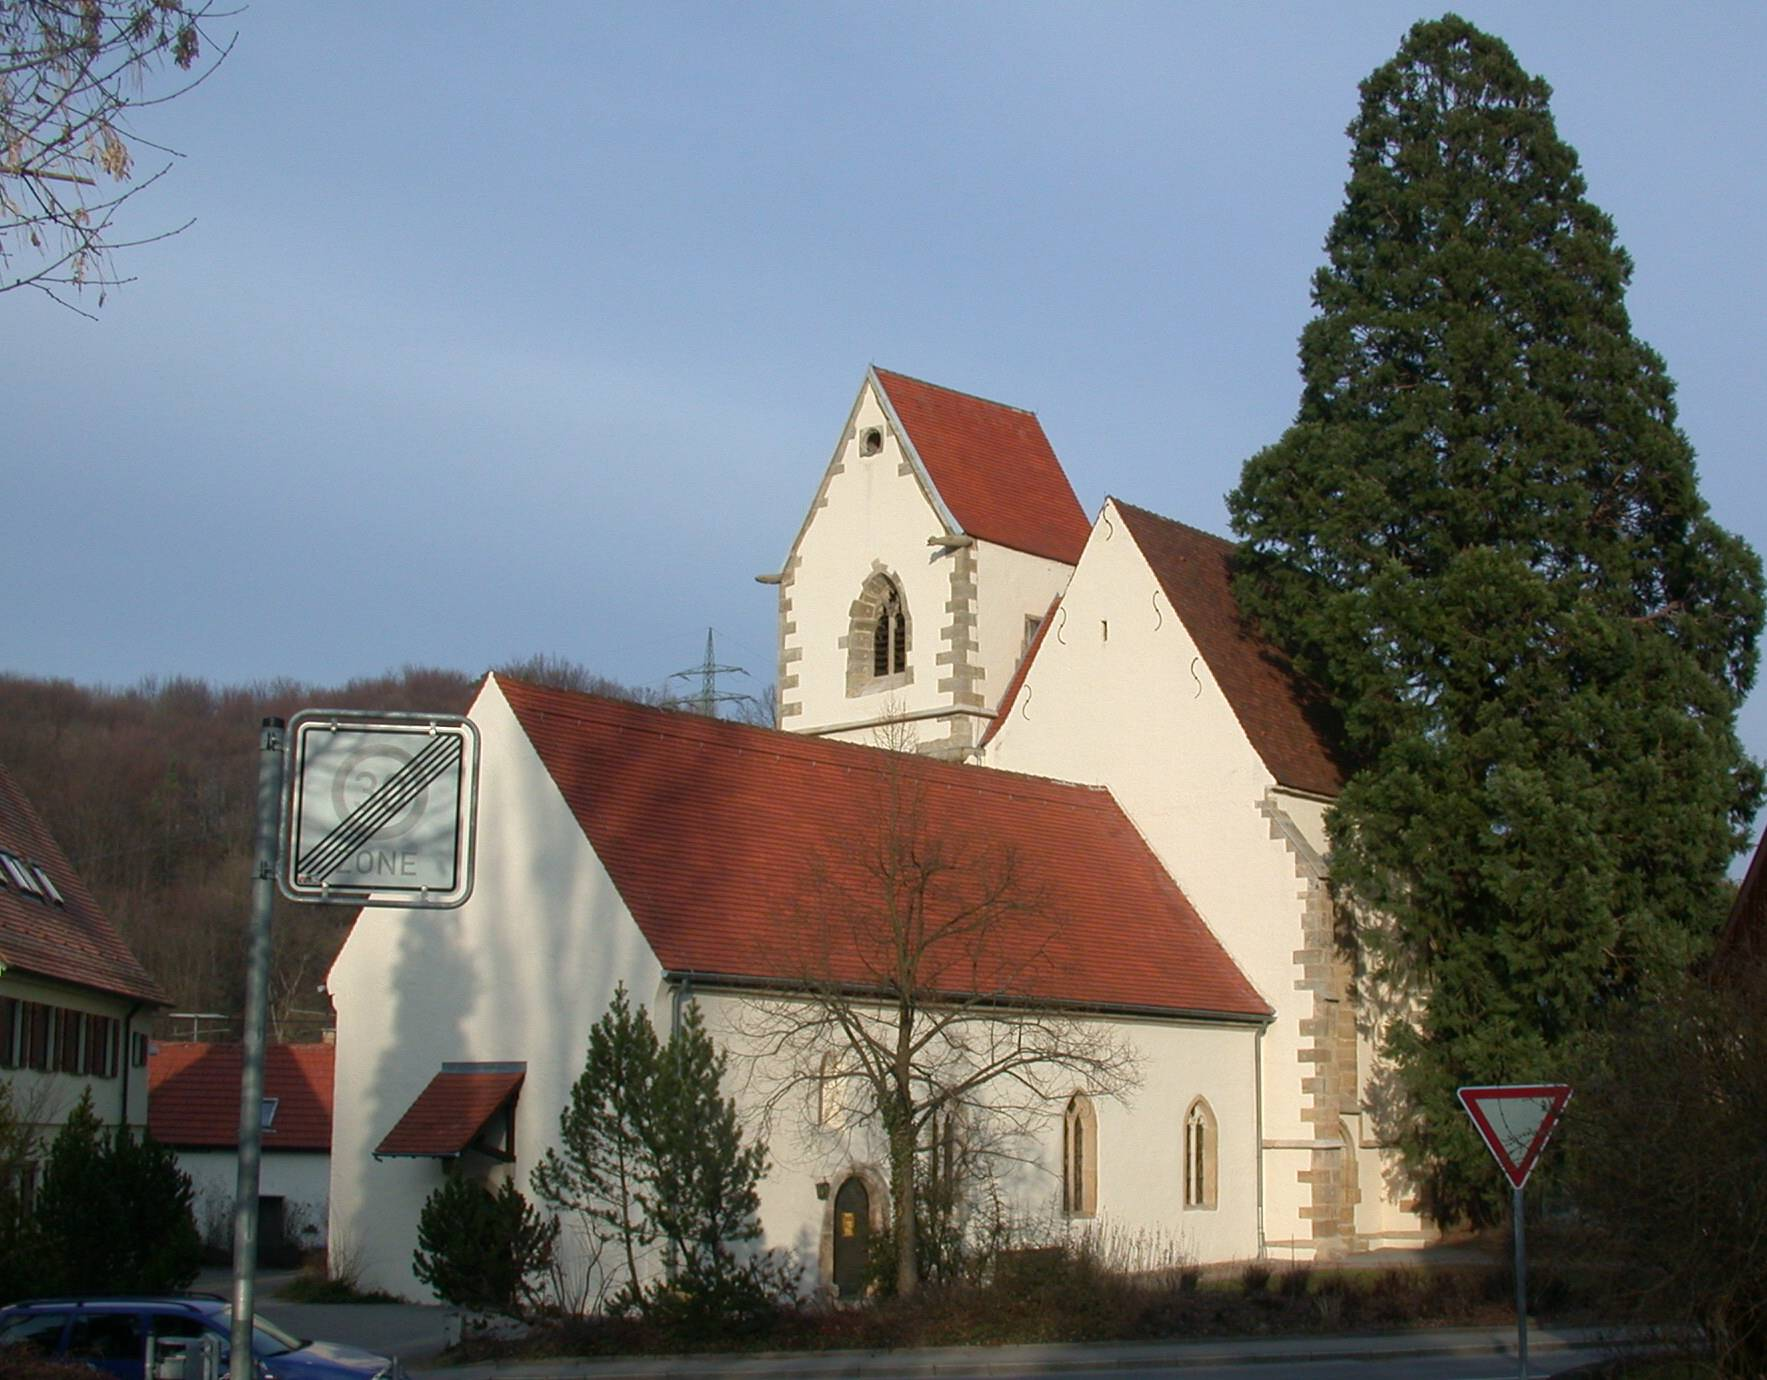 The church of Bronnweiler